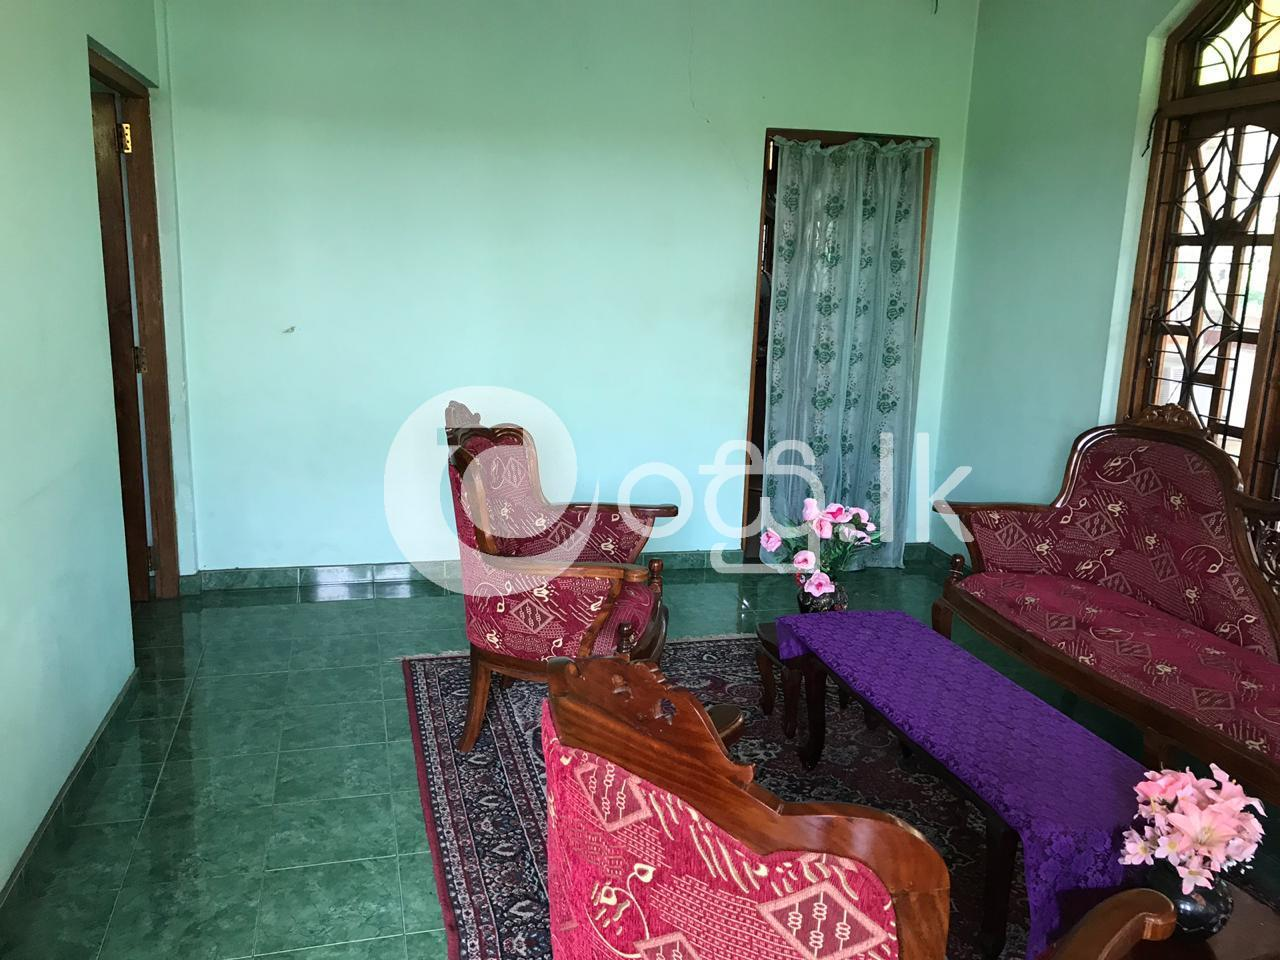 House for sale in Kandy Ilukwatha in Kandy